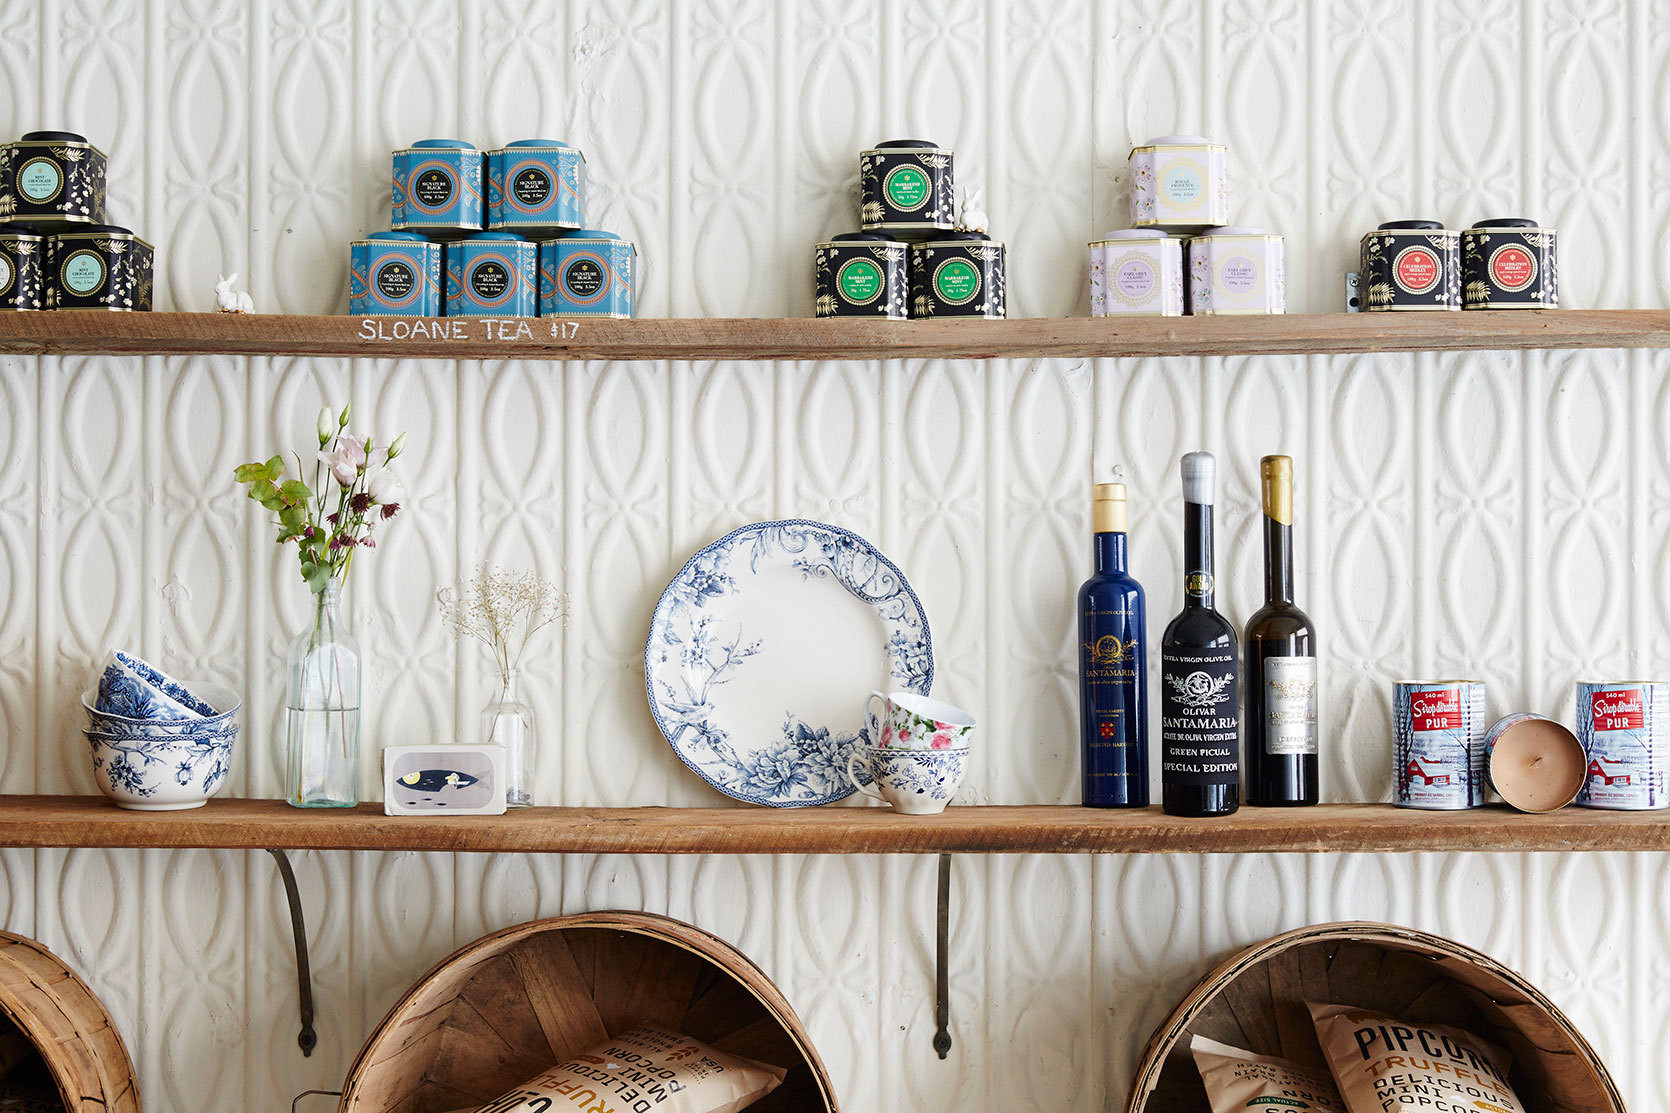 Salvaged materials and eye-catching patterns are used judiciously throughout Maman's welcoming interior.